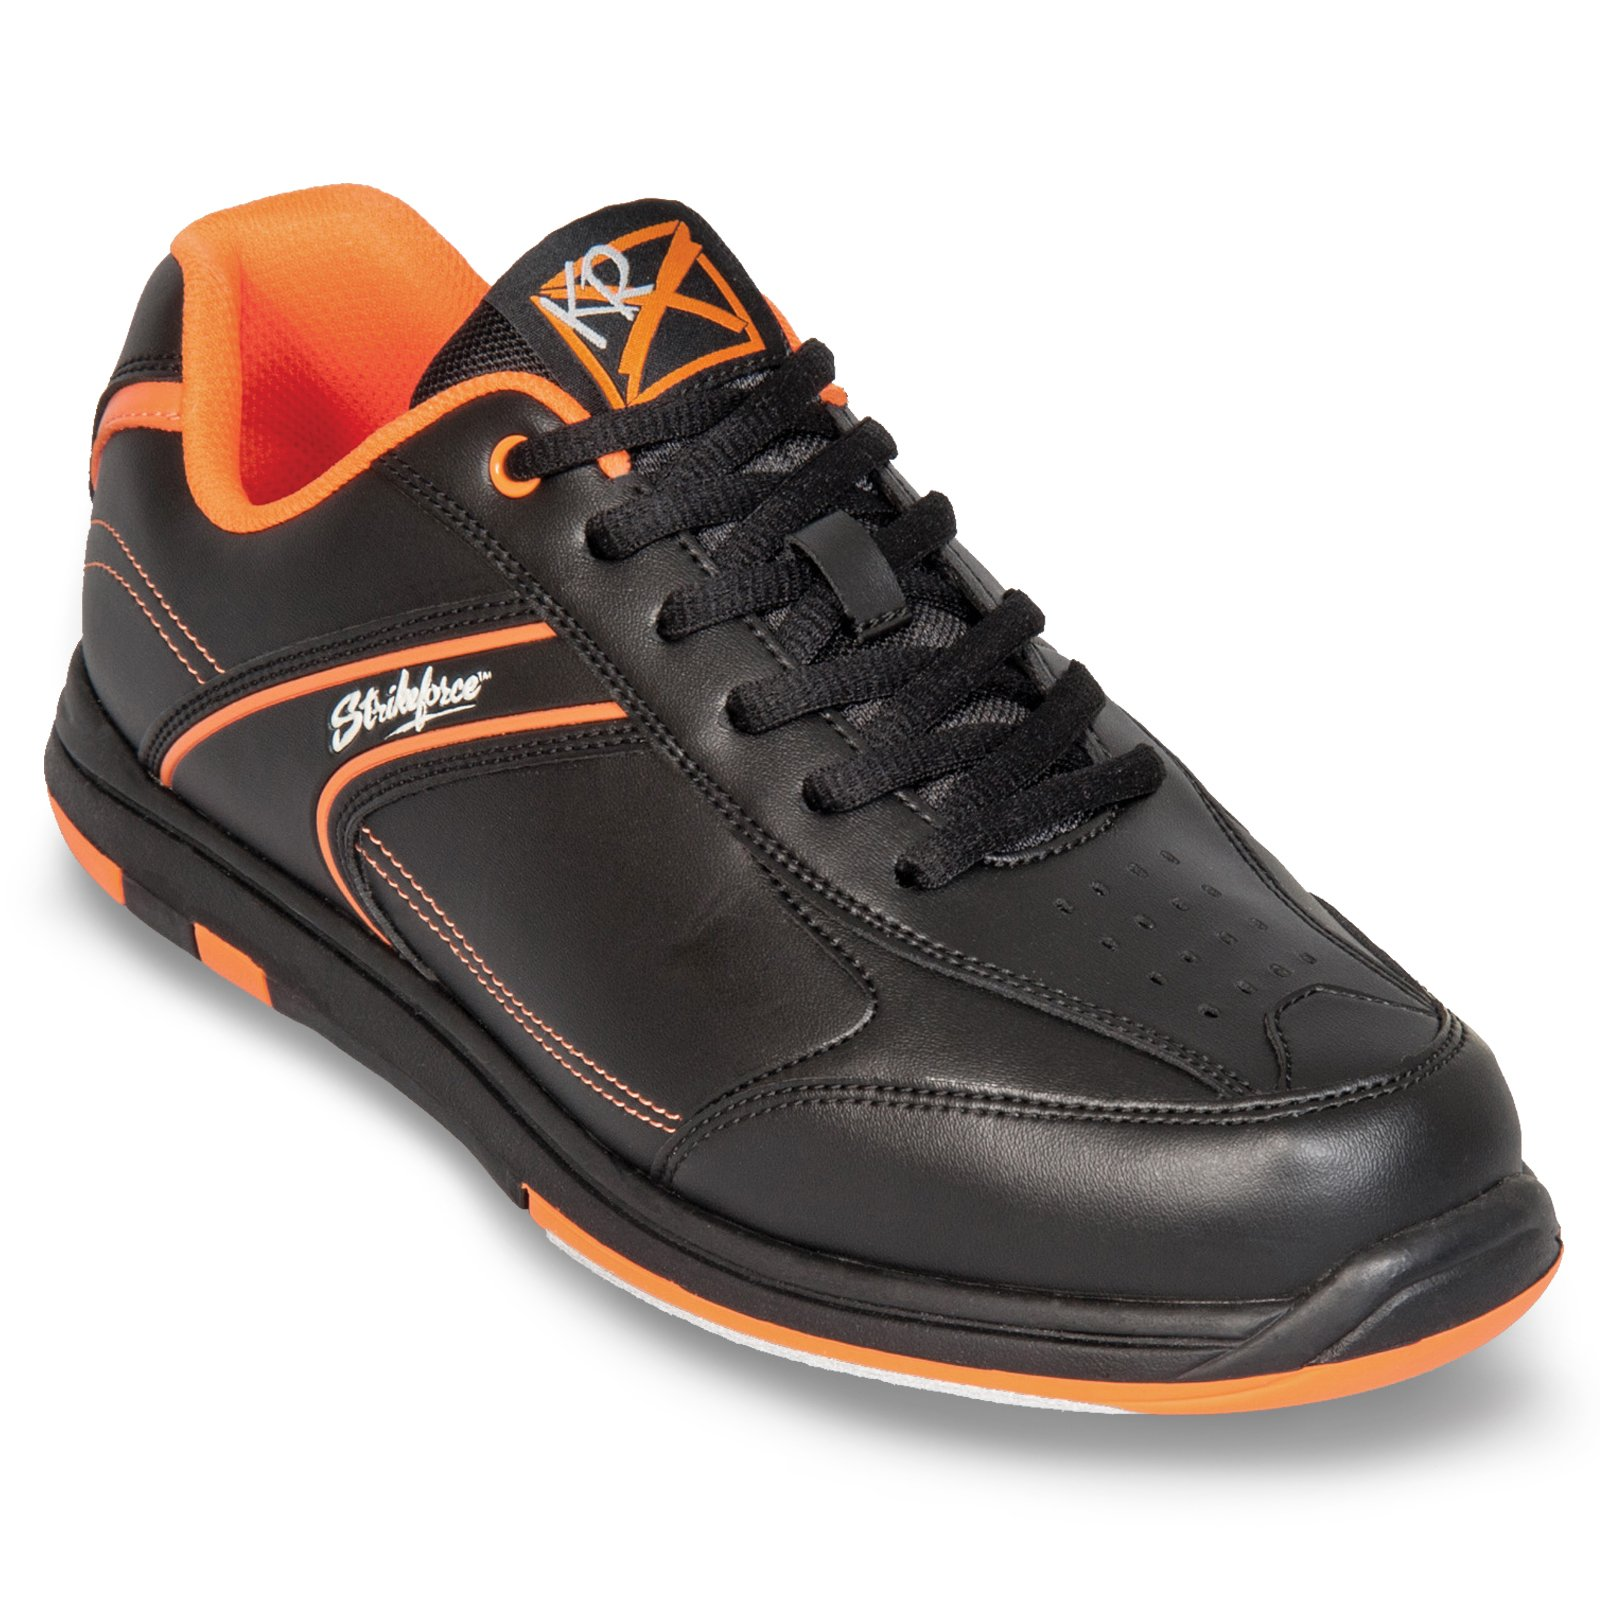 Strikeforce Flyer Black/Oragne Bowling Shoes Men's Size 10 by KR Strikeforce (Image #3)